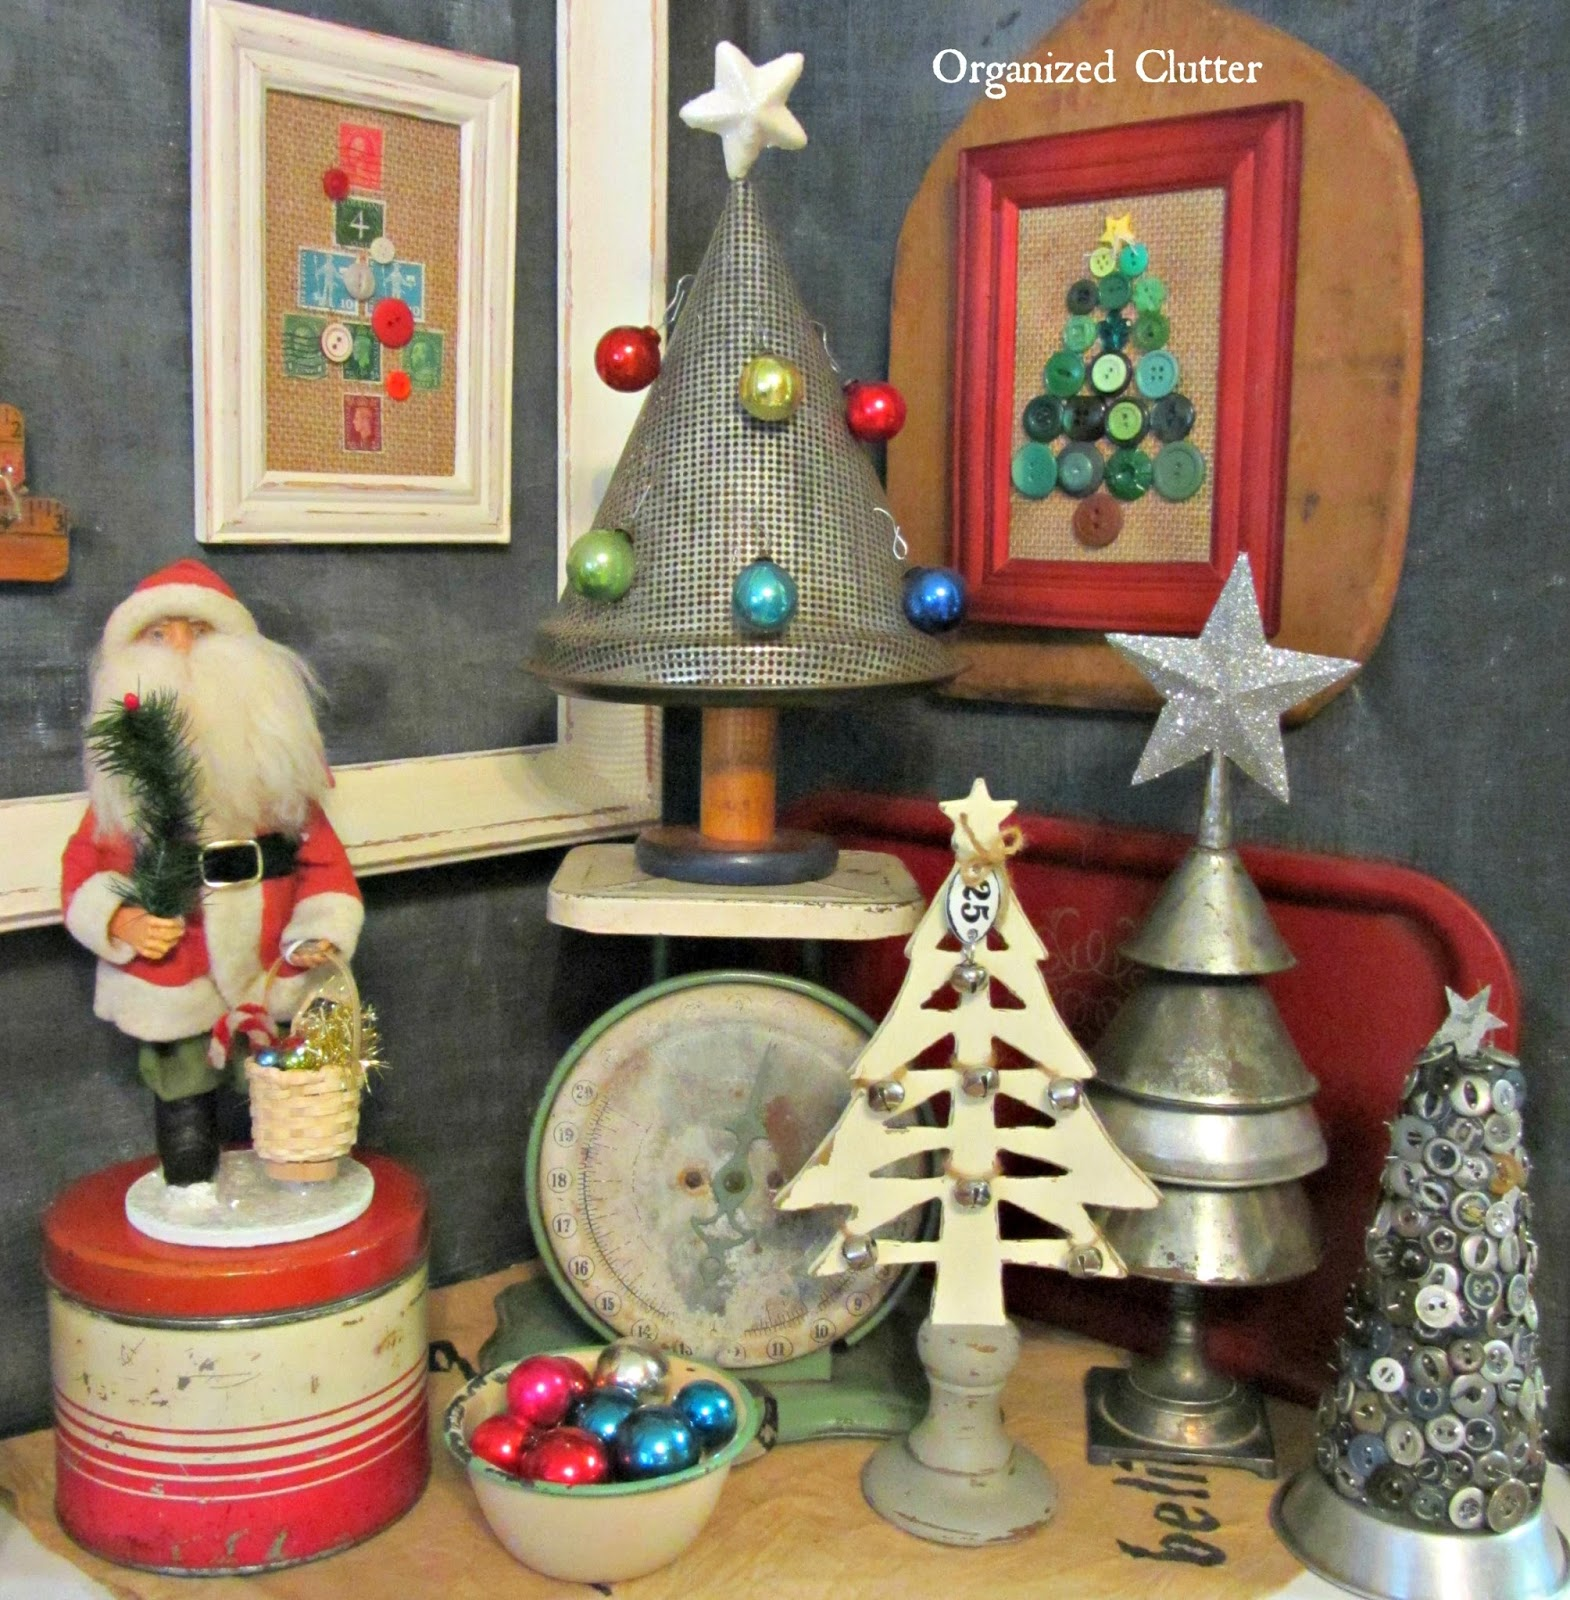 Alternative Rustic & Repurposed Christmas Trees www.organizedclutterqueen.blogspot.com